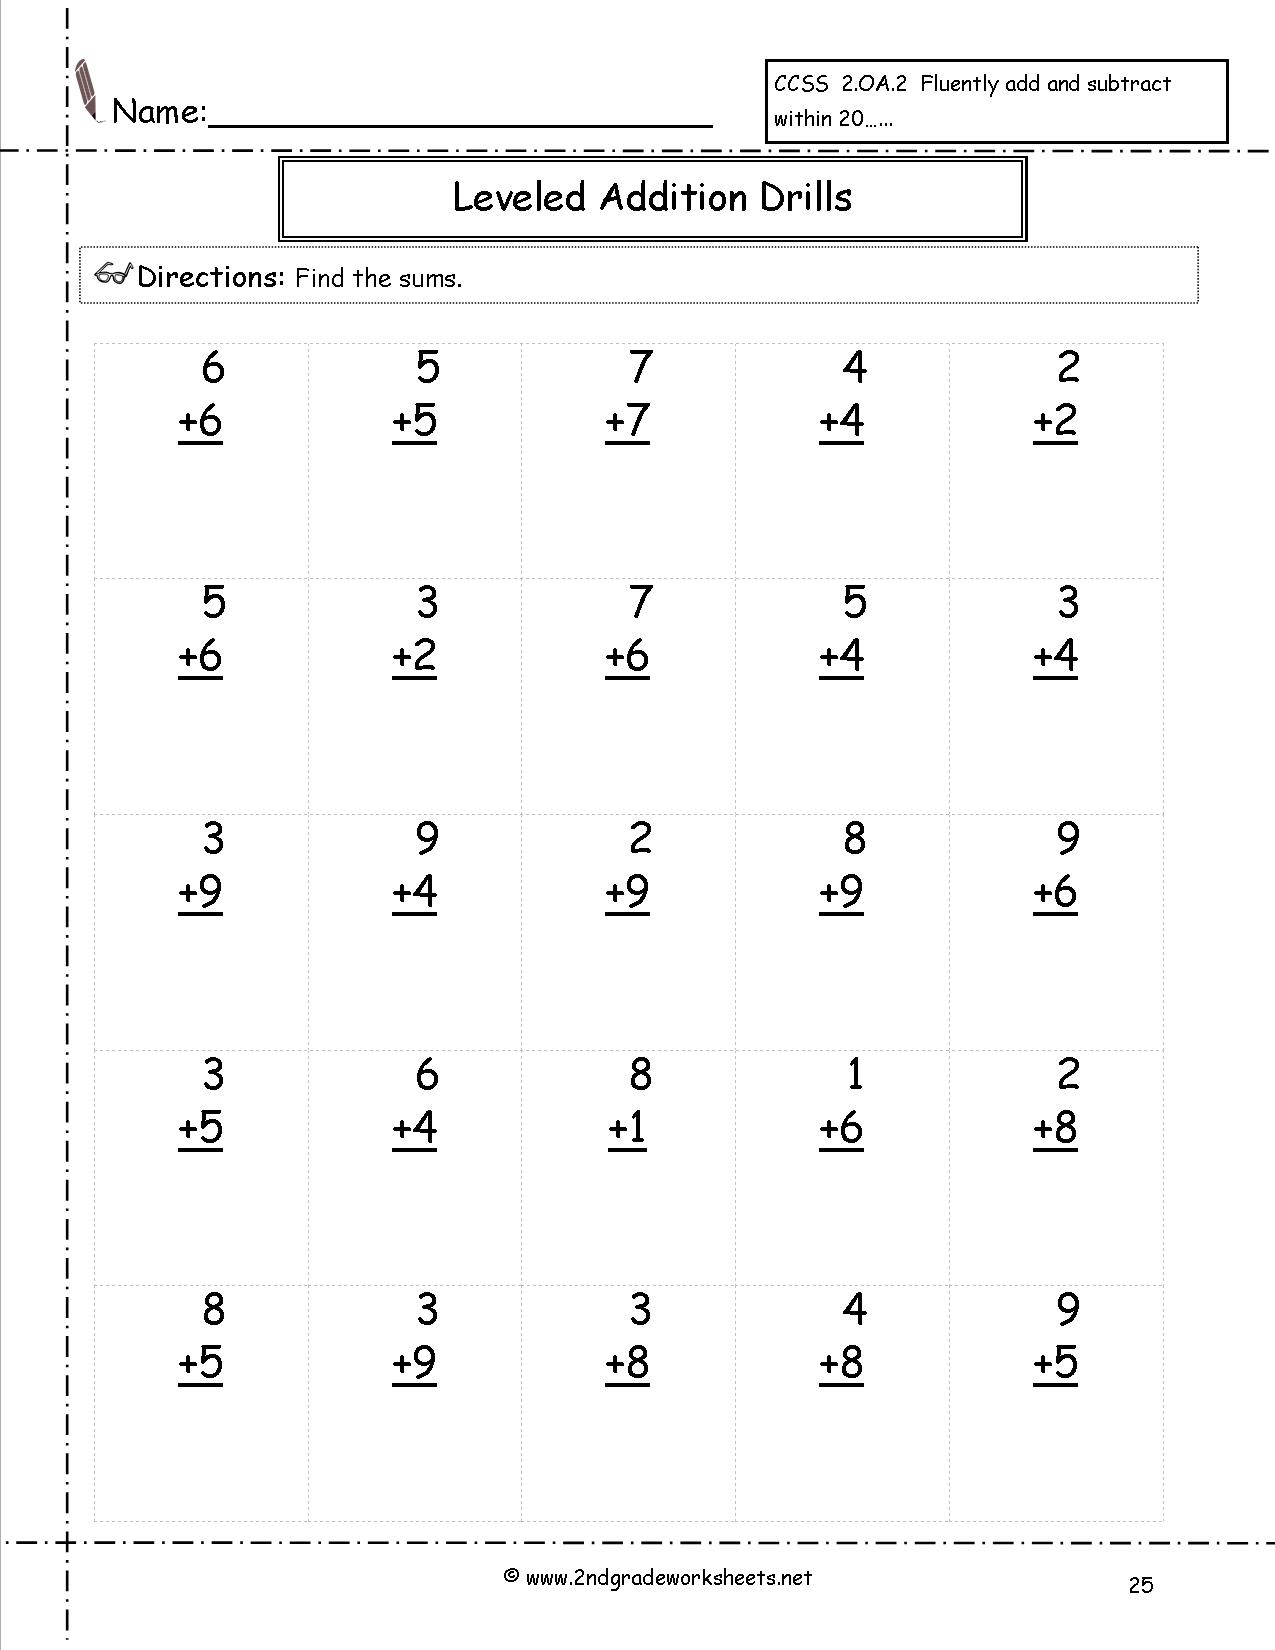 Free Math Worksheets And Printouts | Free Printable Addition Worksheets